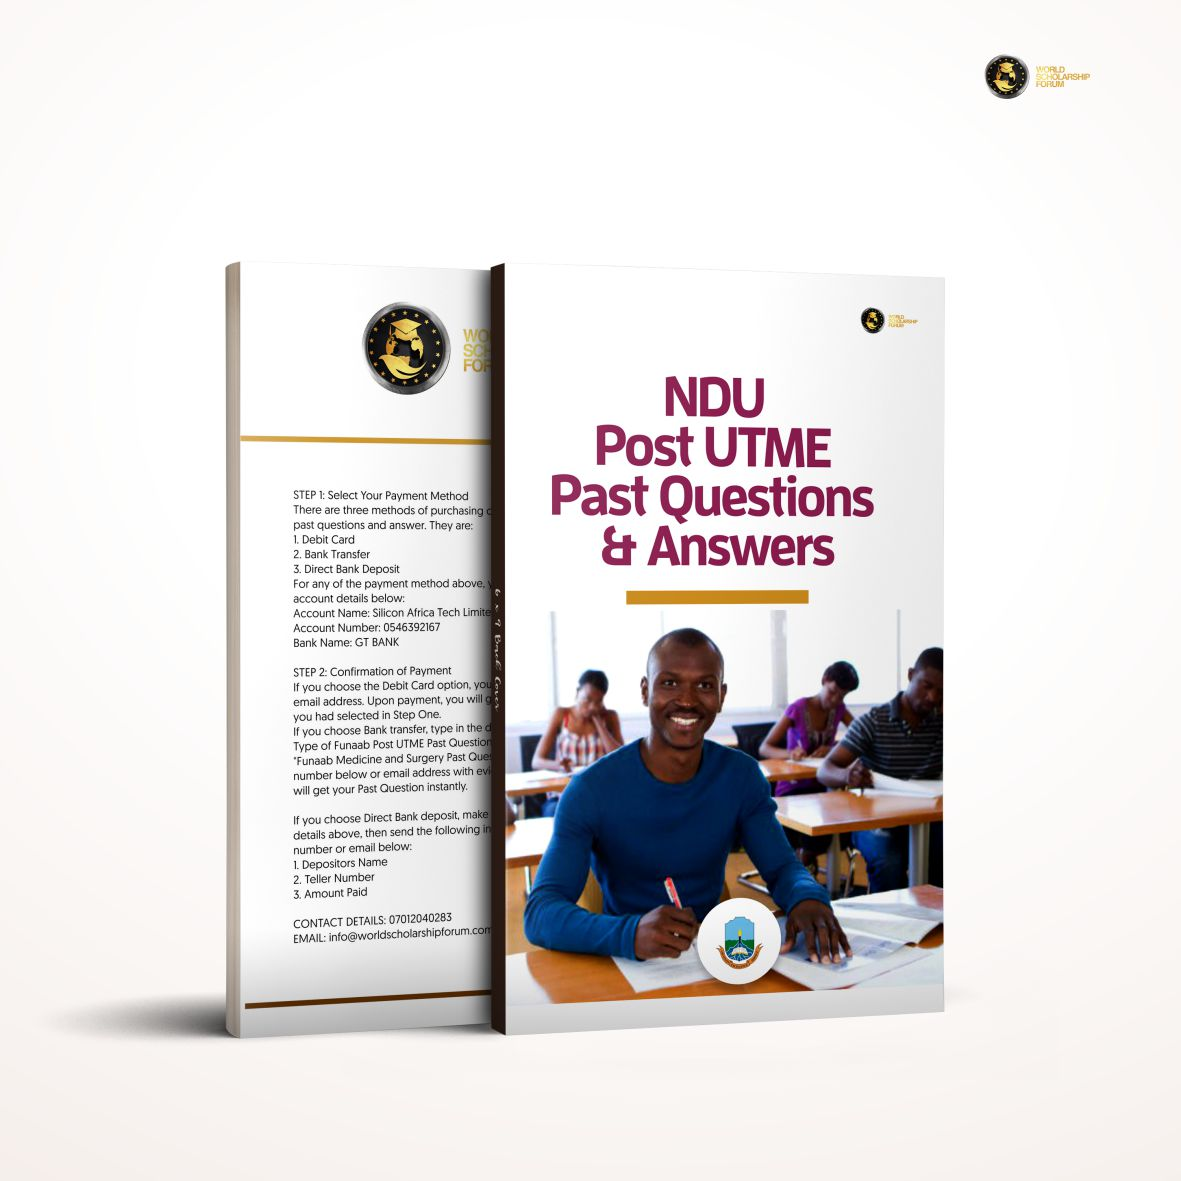 ndu-post-utme-past-question